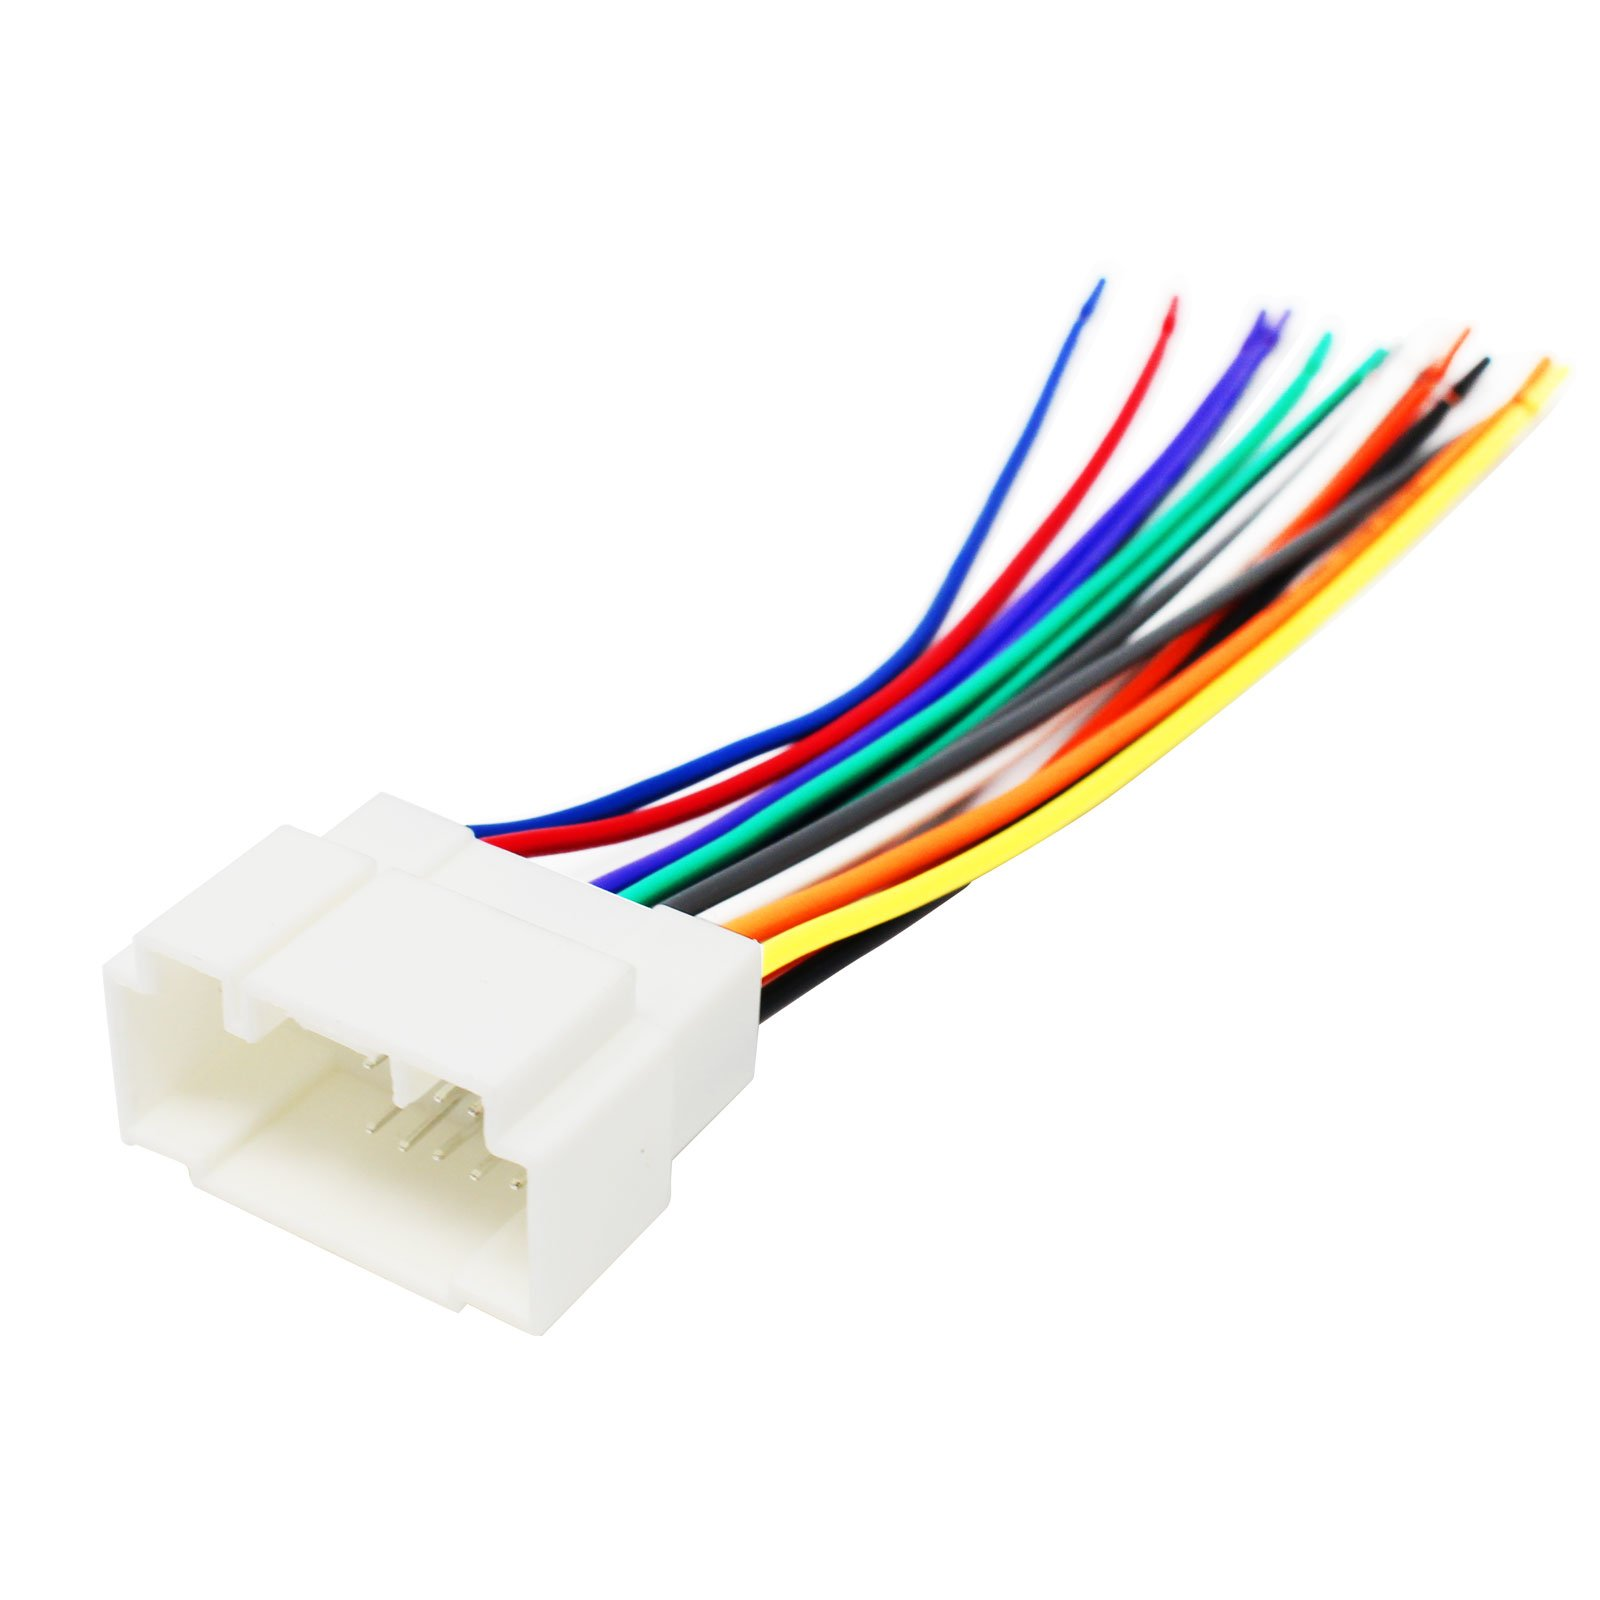 Replacement Radio Wiring Harness for 2006 Honda Accord LX Special Edition Sedan 4-Door 2.4L - Car Stereo Connector